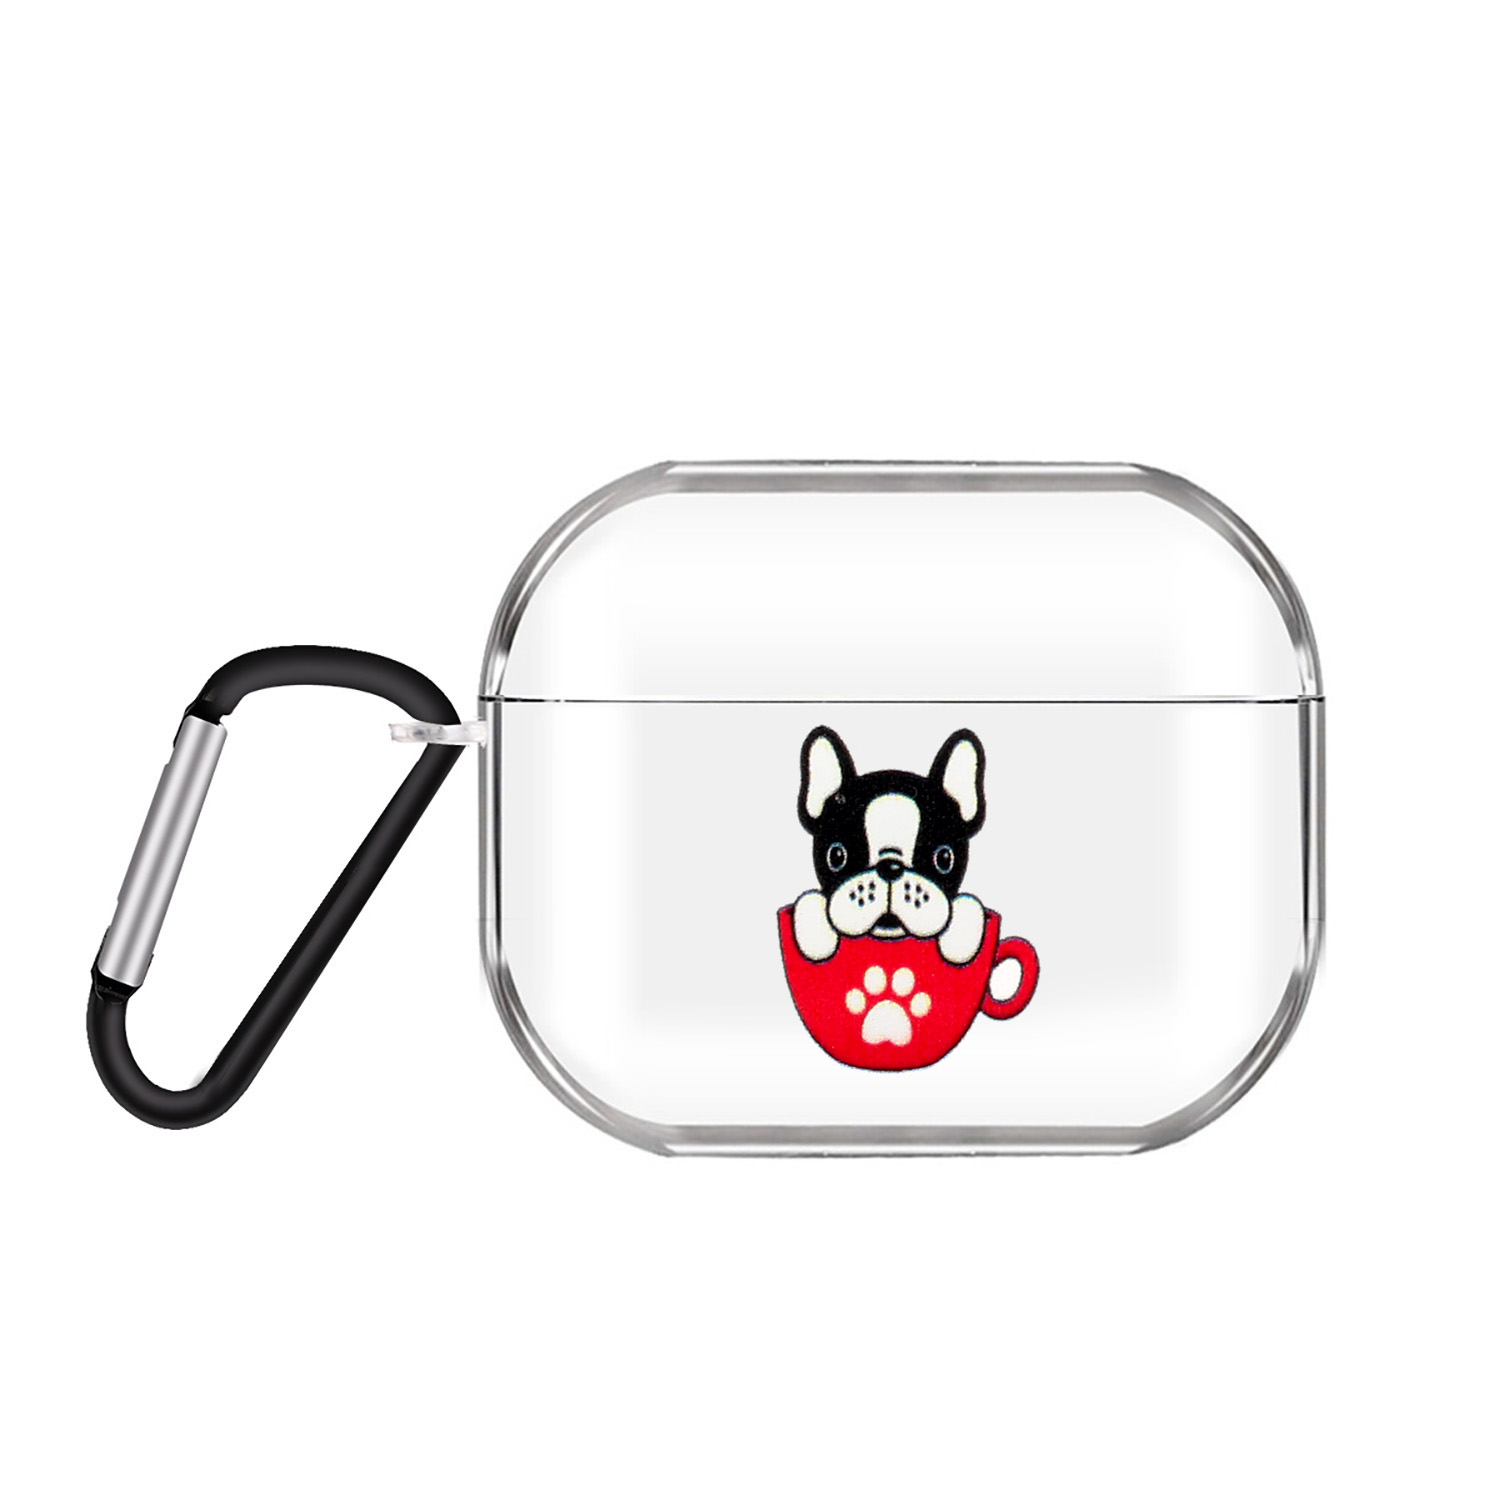 For AirPods Pro Headphones Case Transparent Earphone Shell with Metal Hook Overall Protection Cover 6 teacup cat